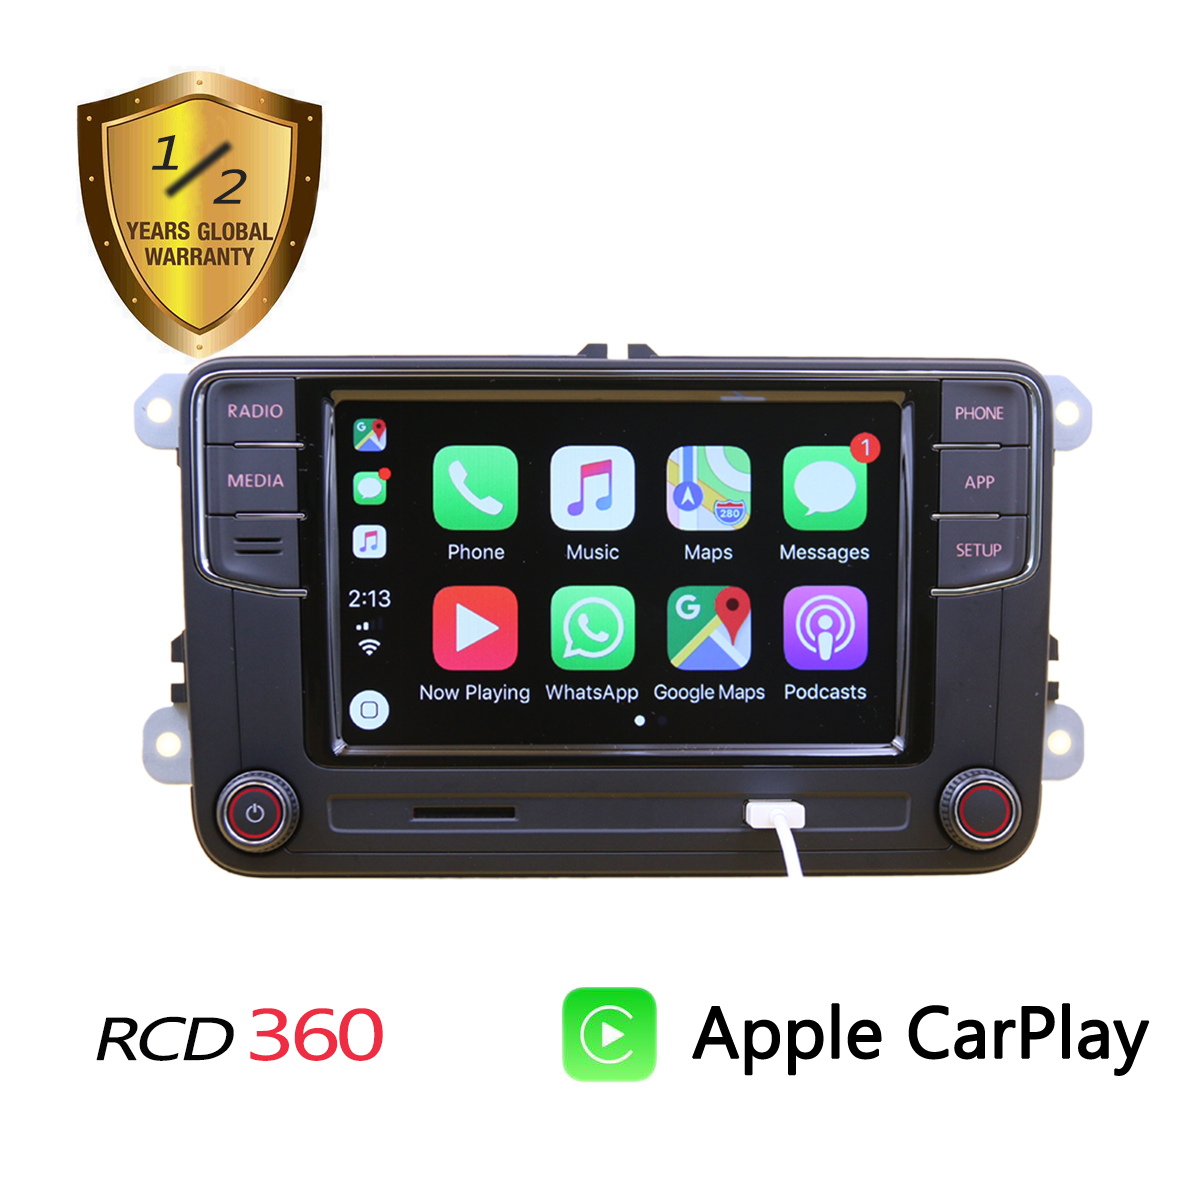 Polo Mib-Radio Rcd360 Carplay Spanish Jetta Tiguan 6RD035187B Passat B6 Golf 5 for 6/Jetta/Mk5/.. title=